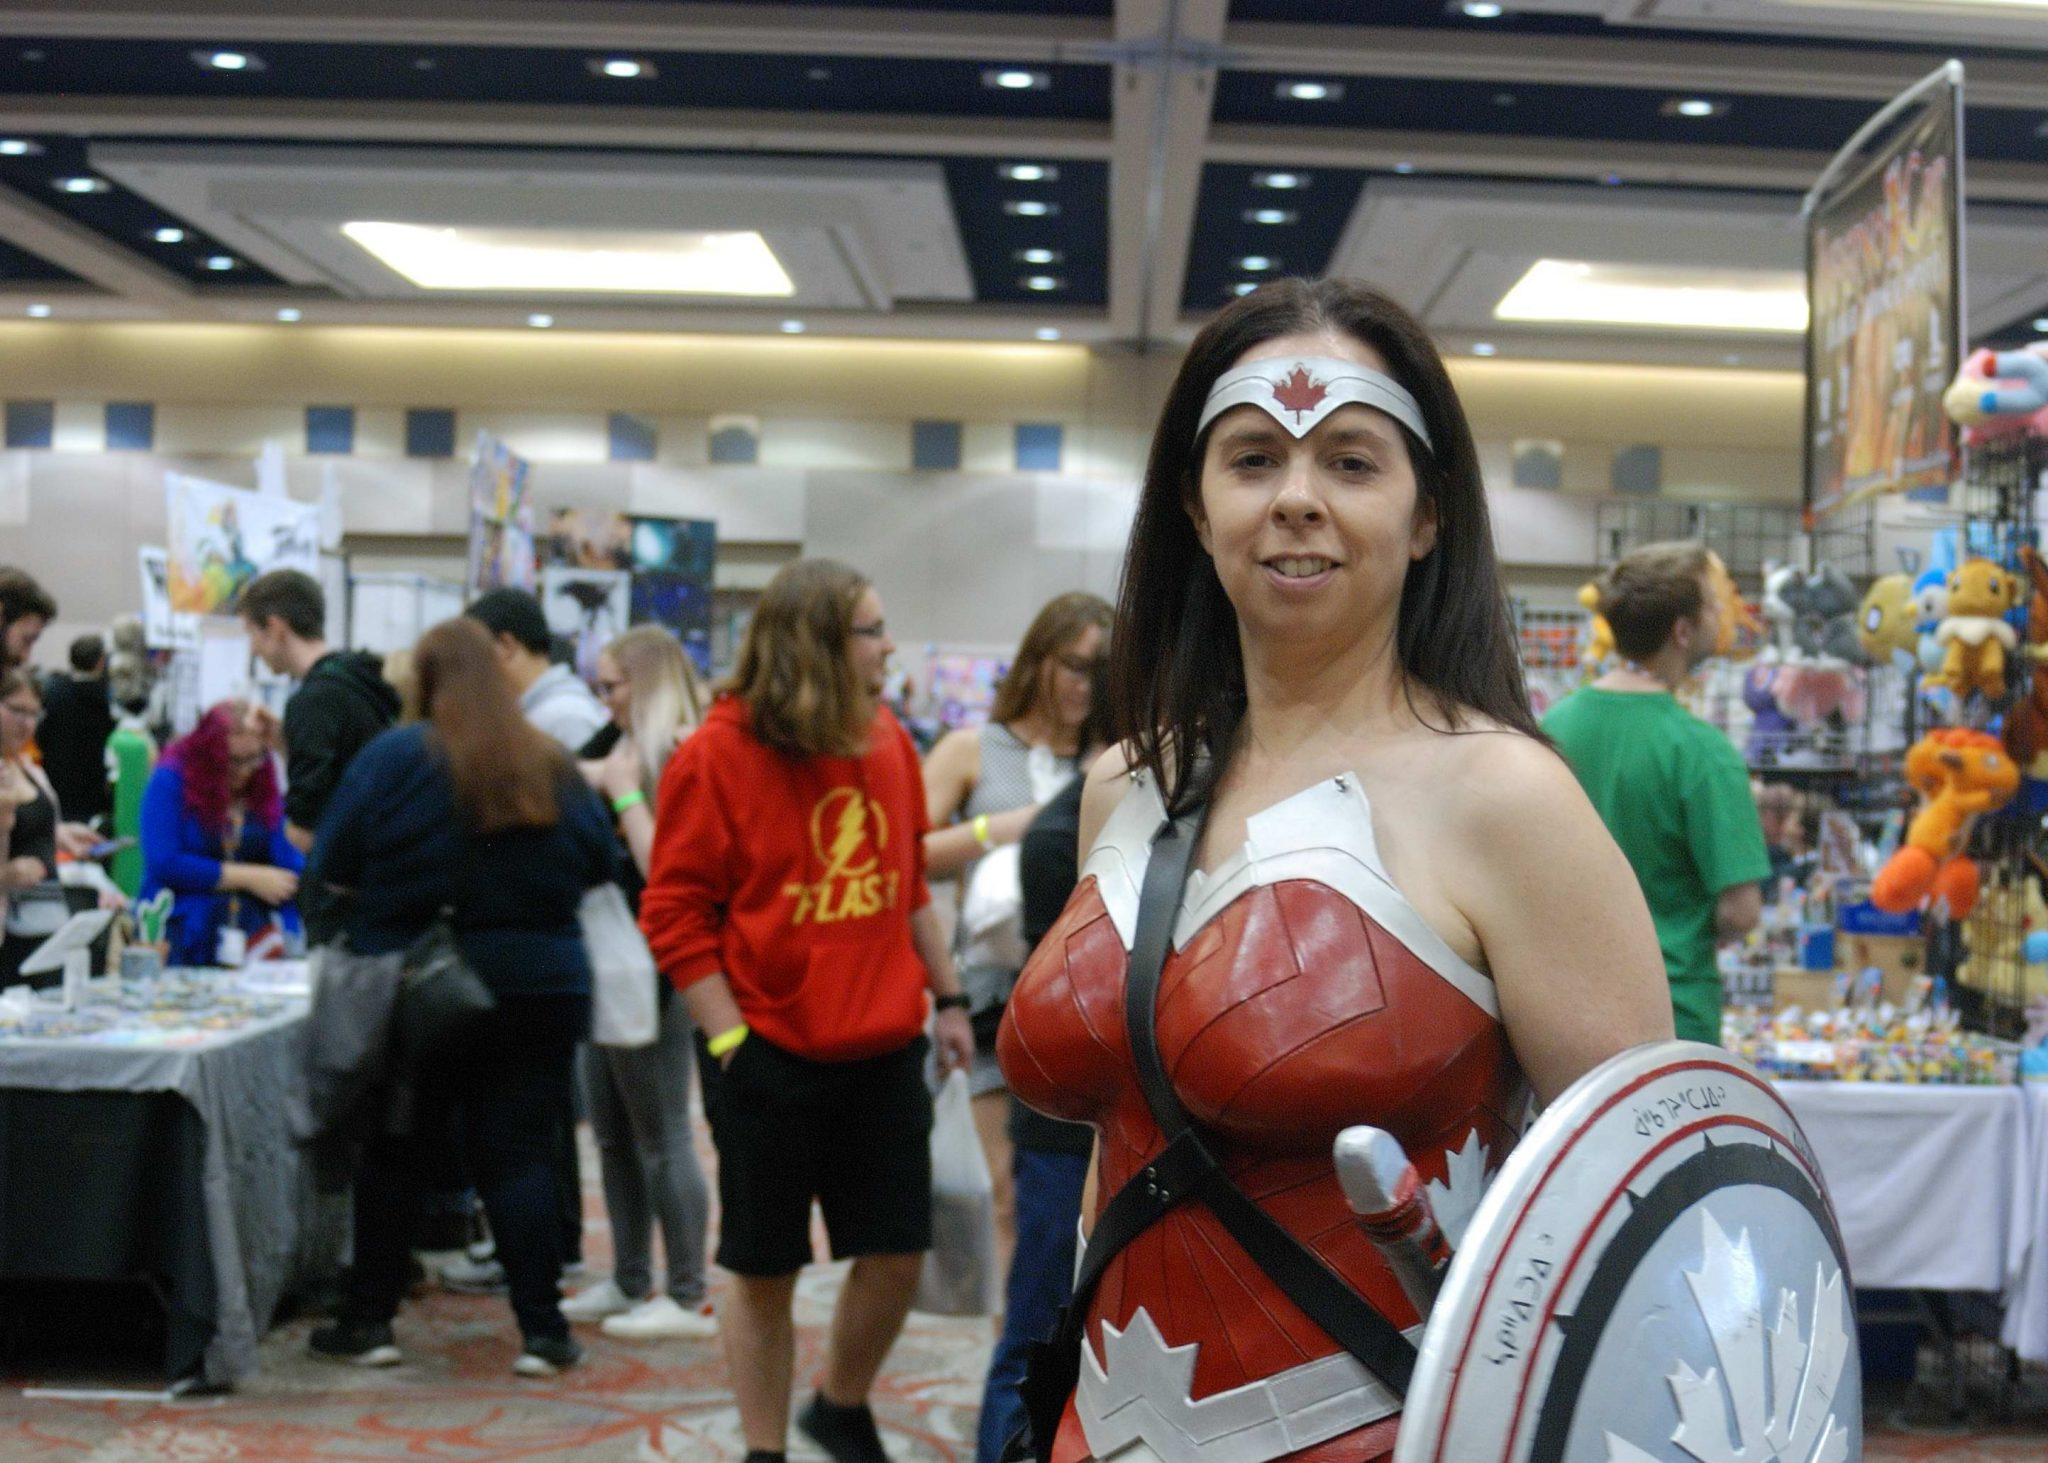 Forest City Comicon 2018. Cosplayer Canada Wonder Woman as a Canadian version of Wonder Woman at Forest City Comicon in London, Ontario.